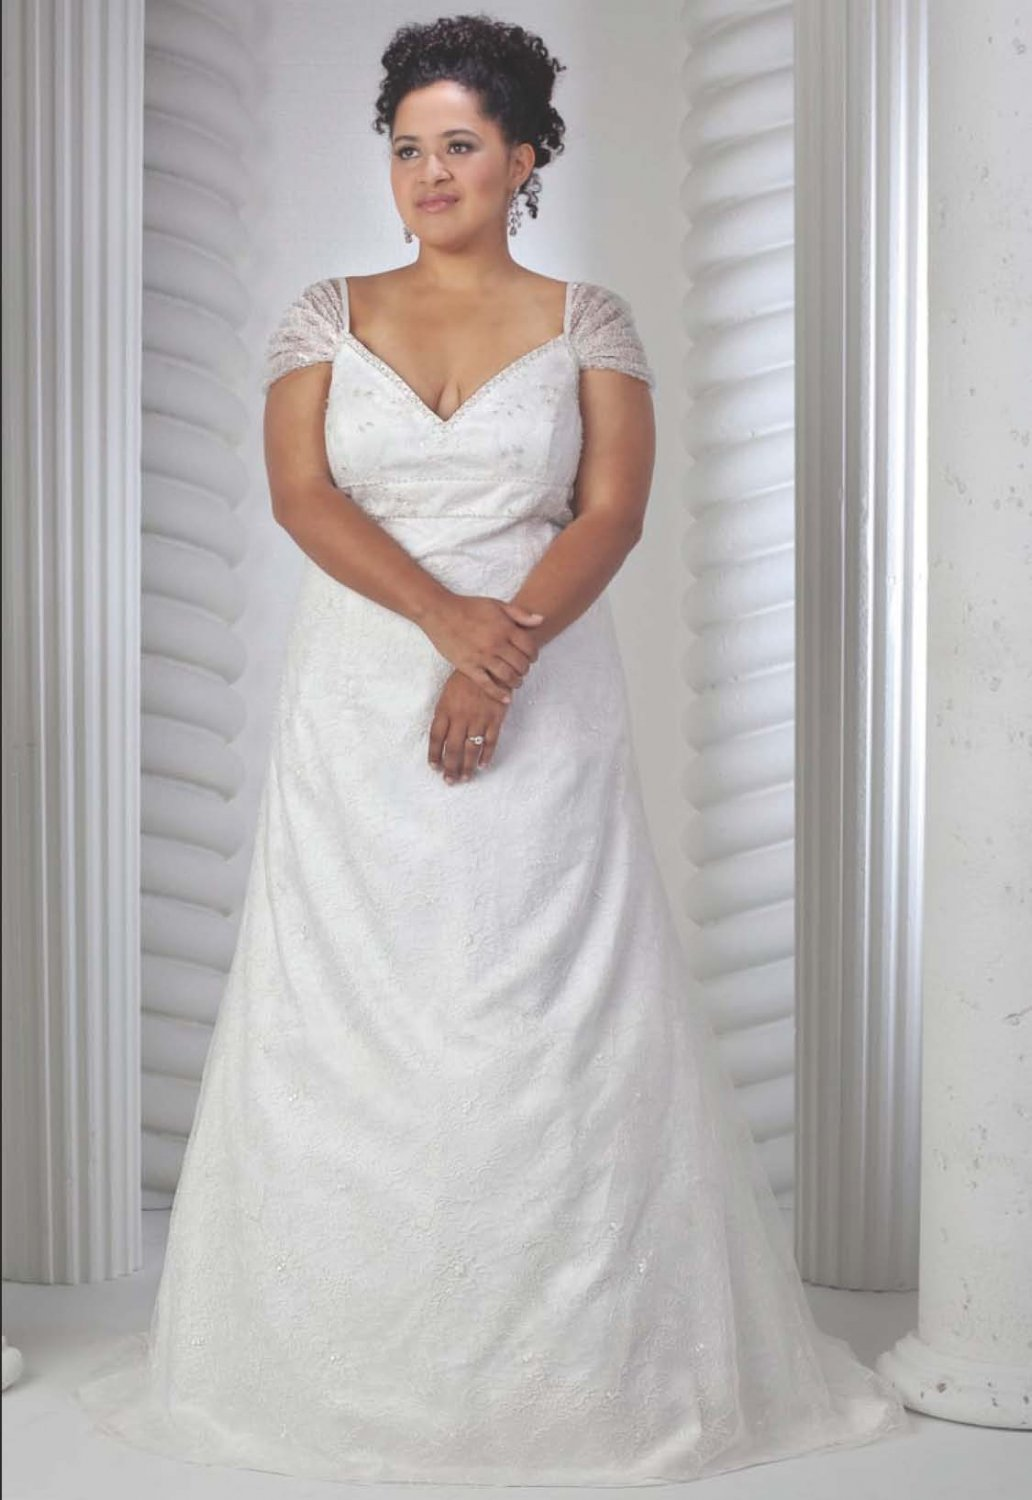 New designer lace plus size bridal wedding dress size 18 for Plus size wedding dress designers